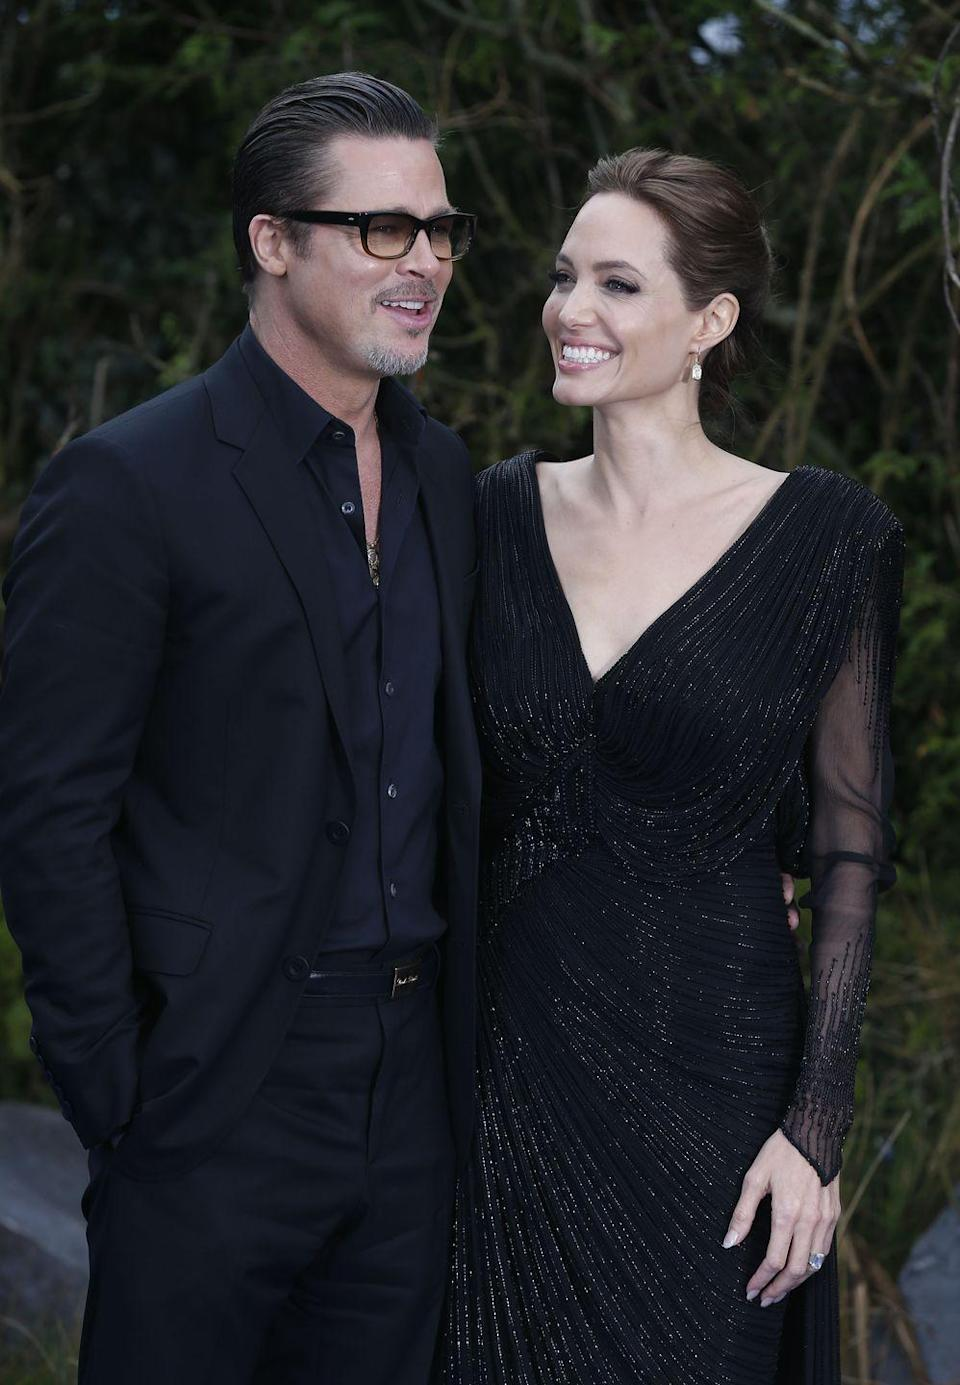 <p>The couple made it official in August 2014. They held a small, private ceremony in France with their children.</p>